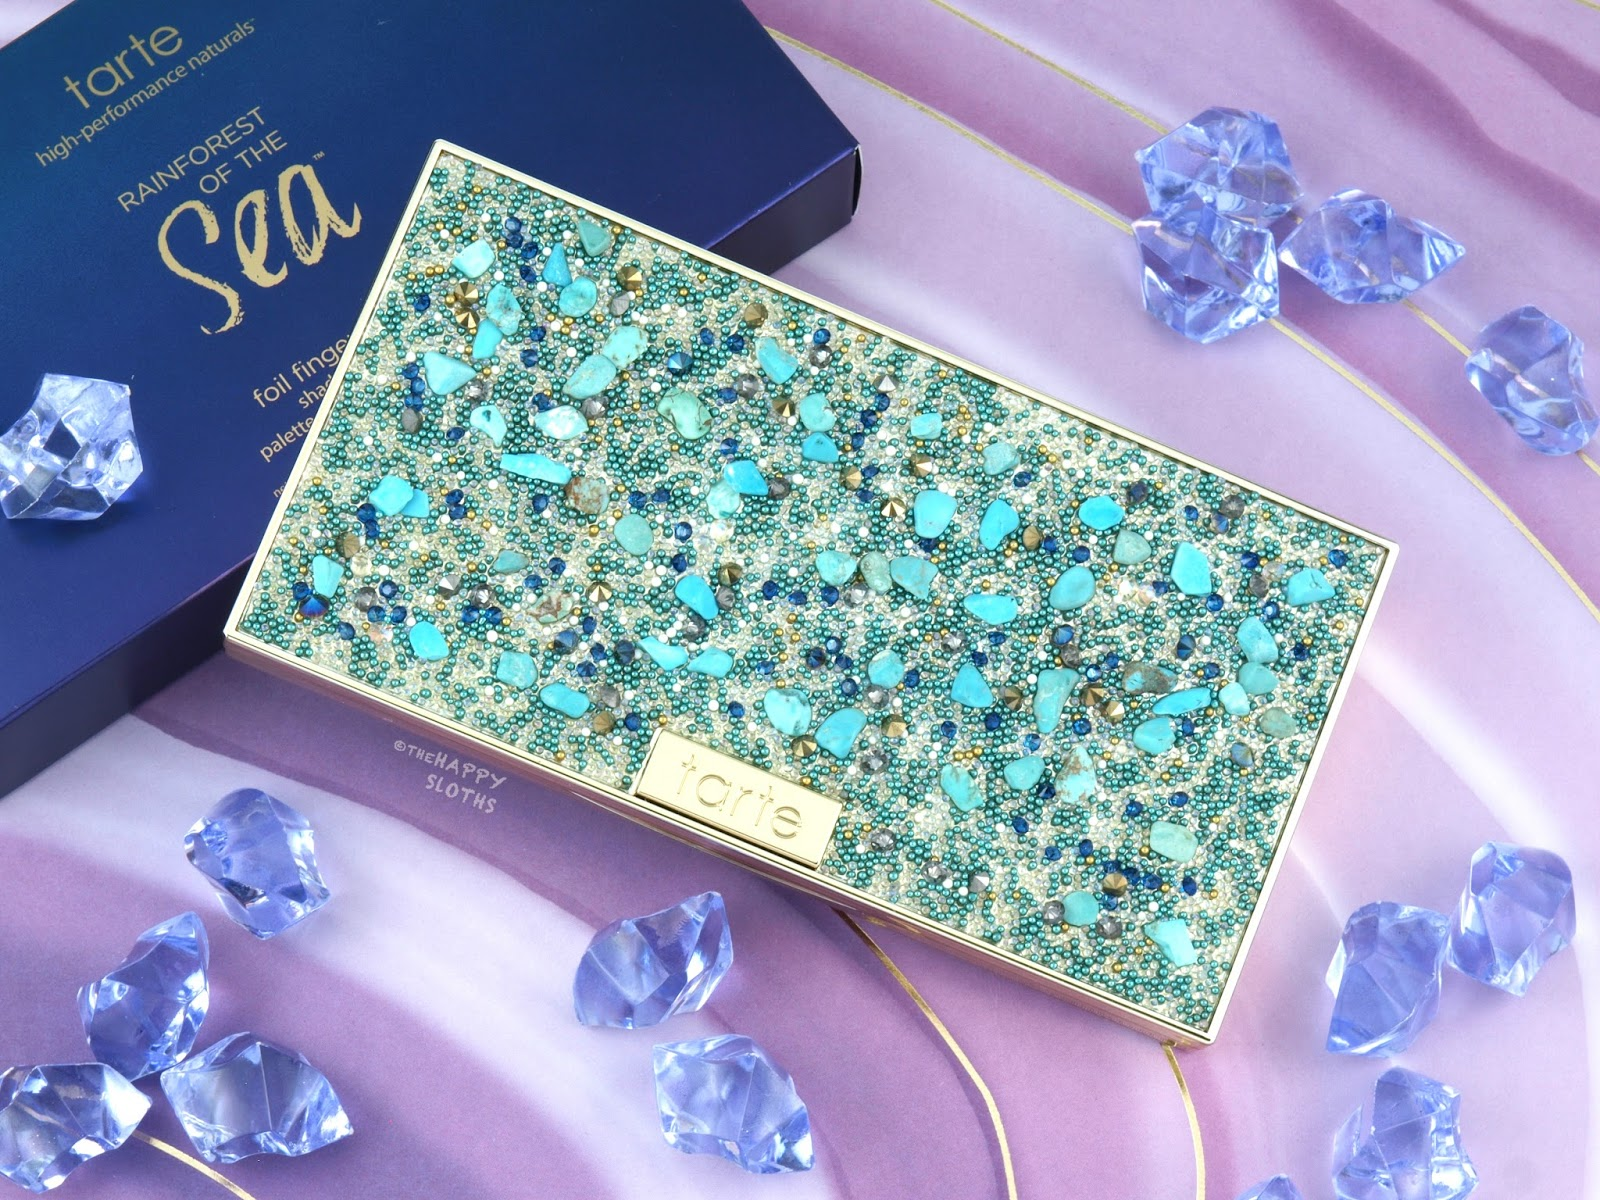 Tarte | Rainforest of the Sea Foil Finger Paints Shadow Palette: Review and Swatches